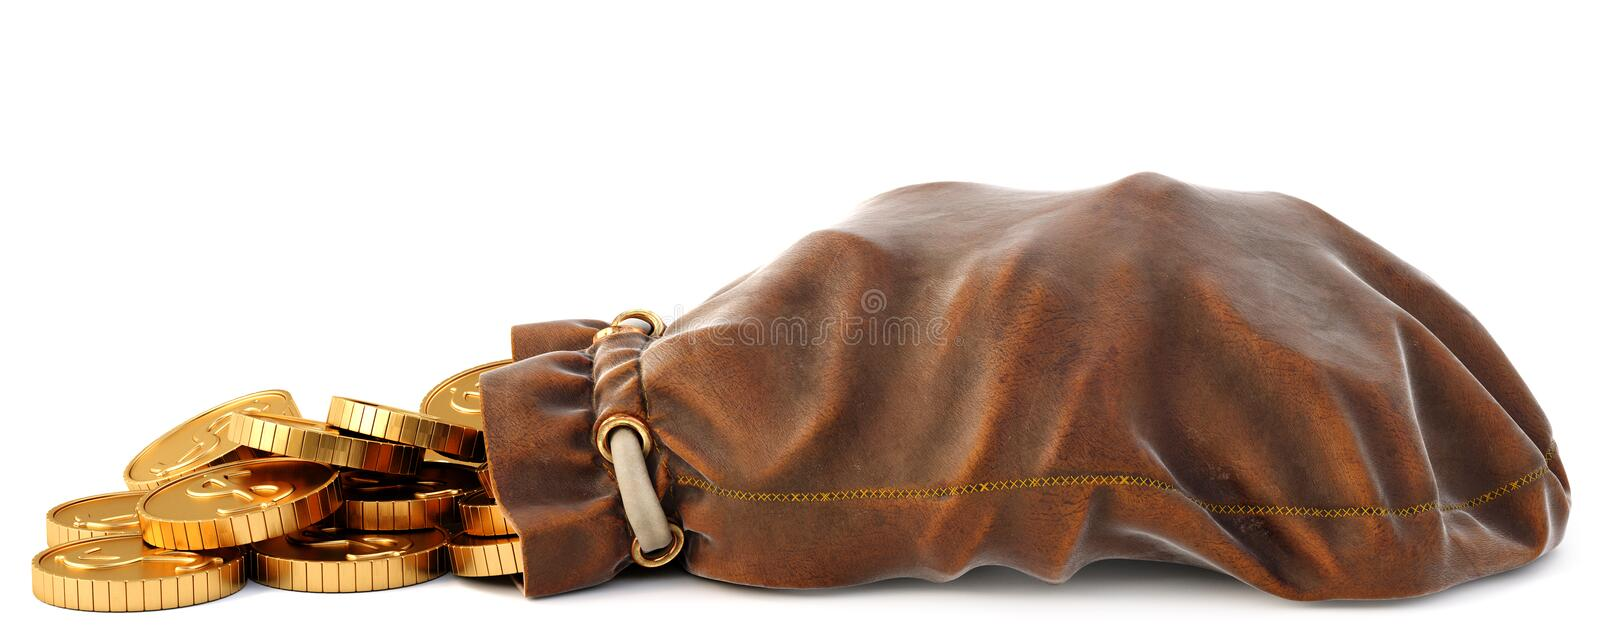 Leather sack. Gold coins fall out of a leather sack. Isolated on white background. 3D illustration vector illustration